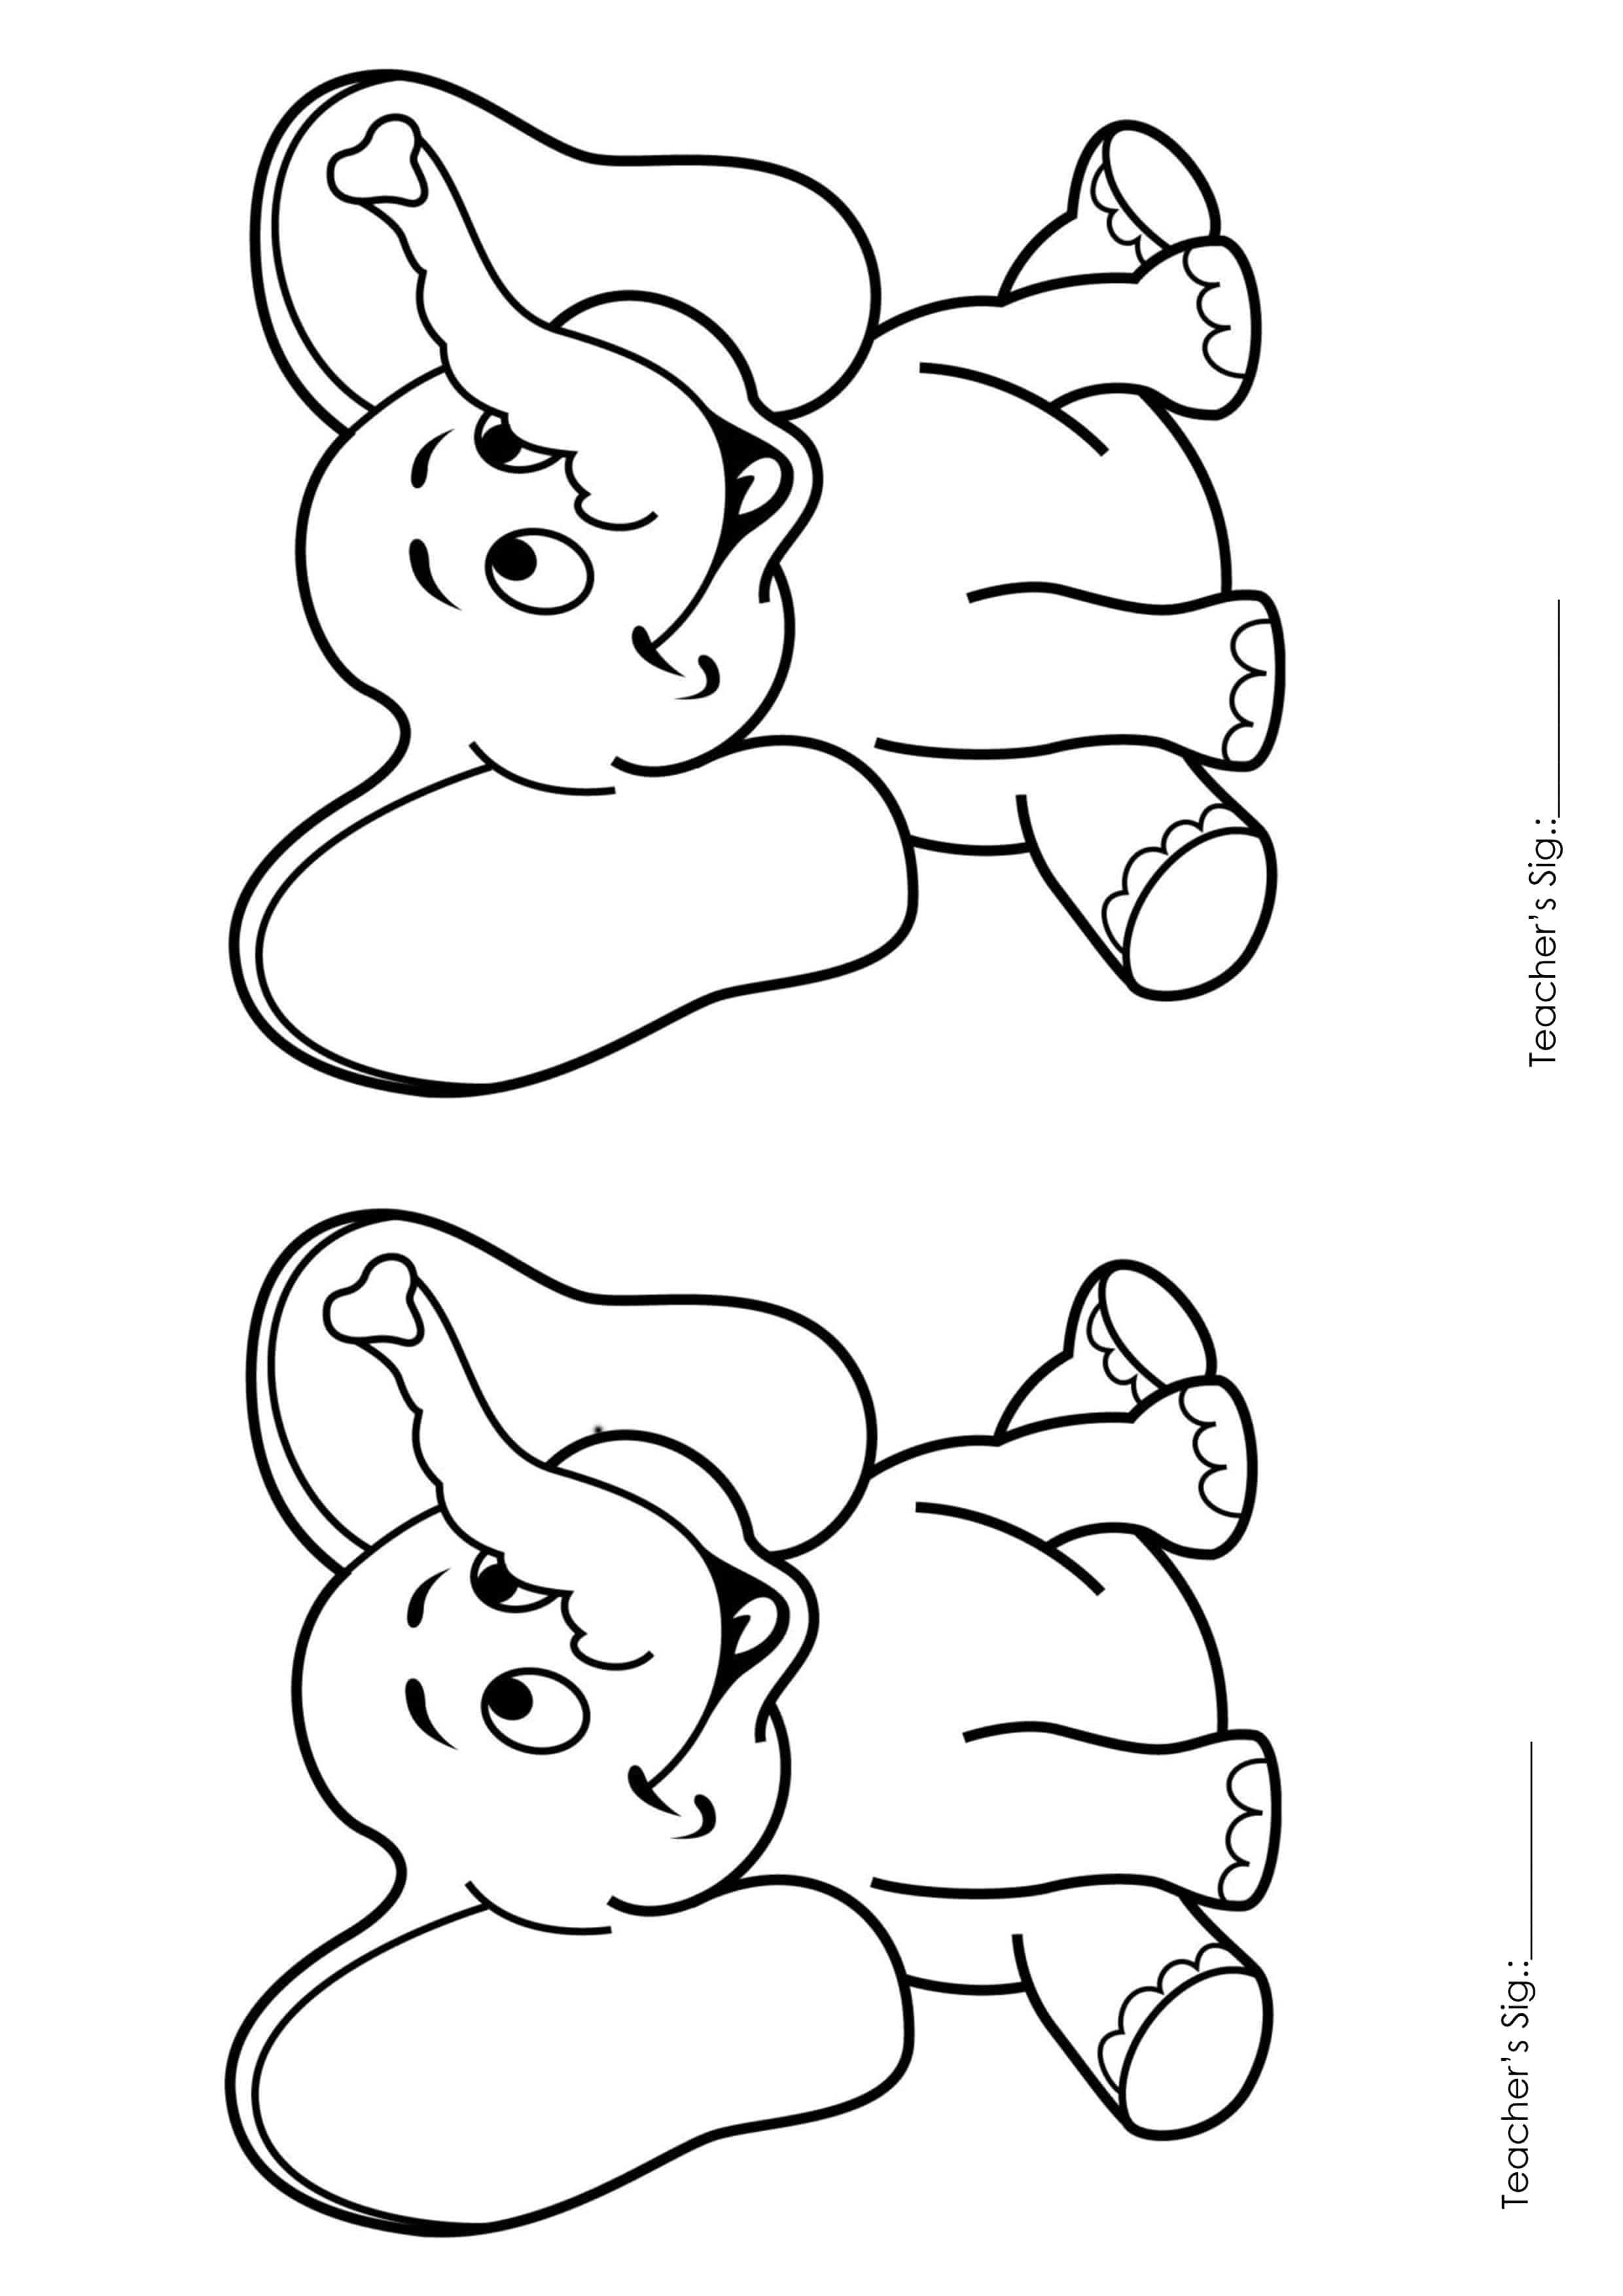 Printable Coloring Pages For Kids Playgroup A4 Size 1